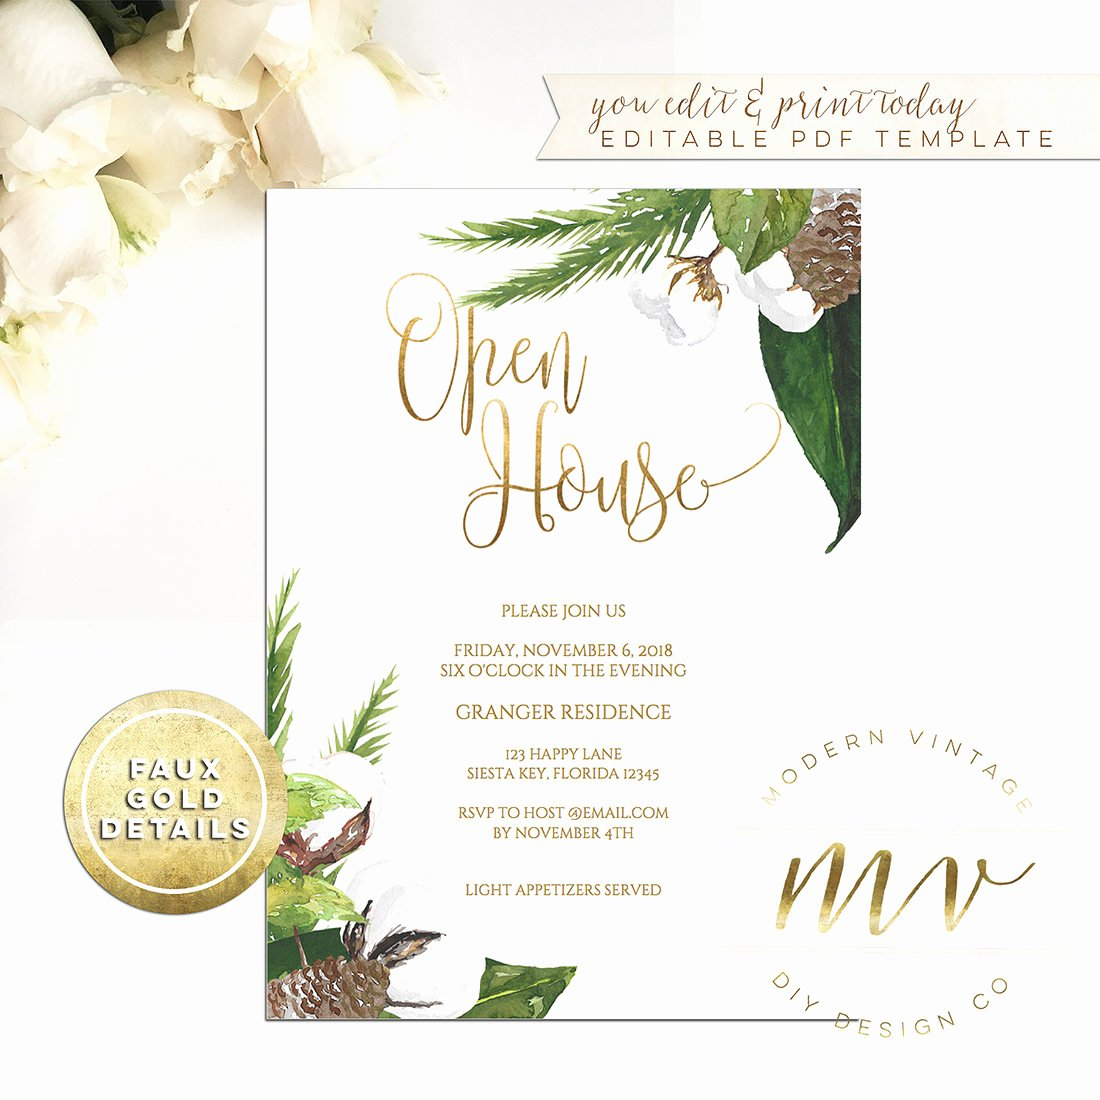 Open House Invitations Templates Best Of Open House Invitation Template 5x7 Editable Printable Invite